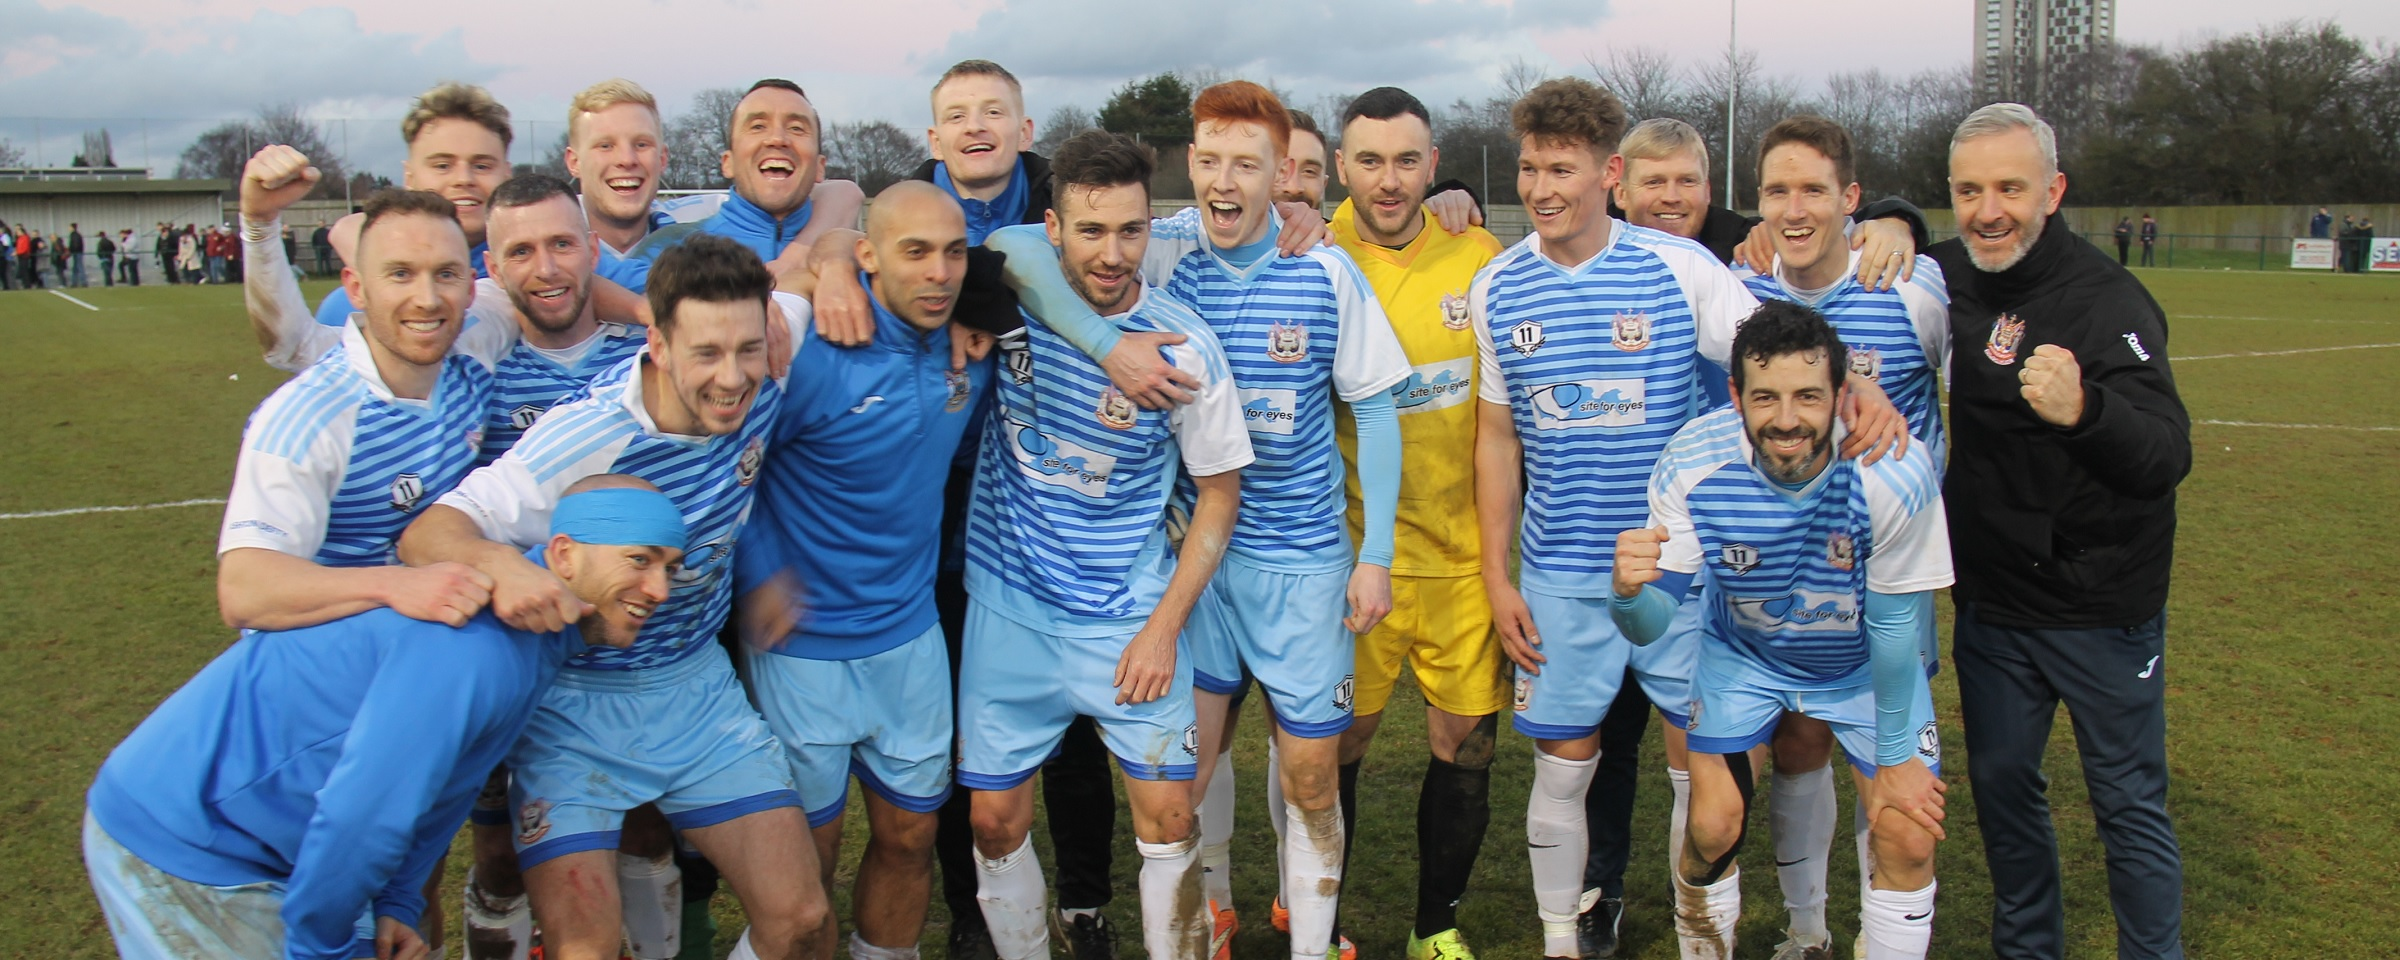 Mariners to host Newport Pagnell in FA Vase quarter-final